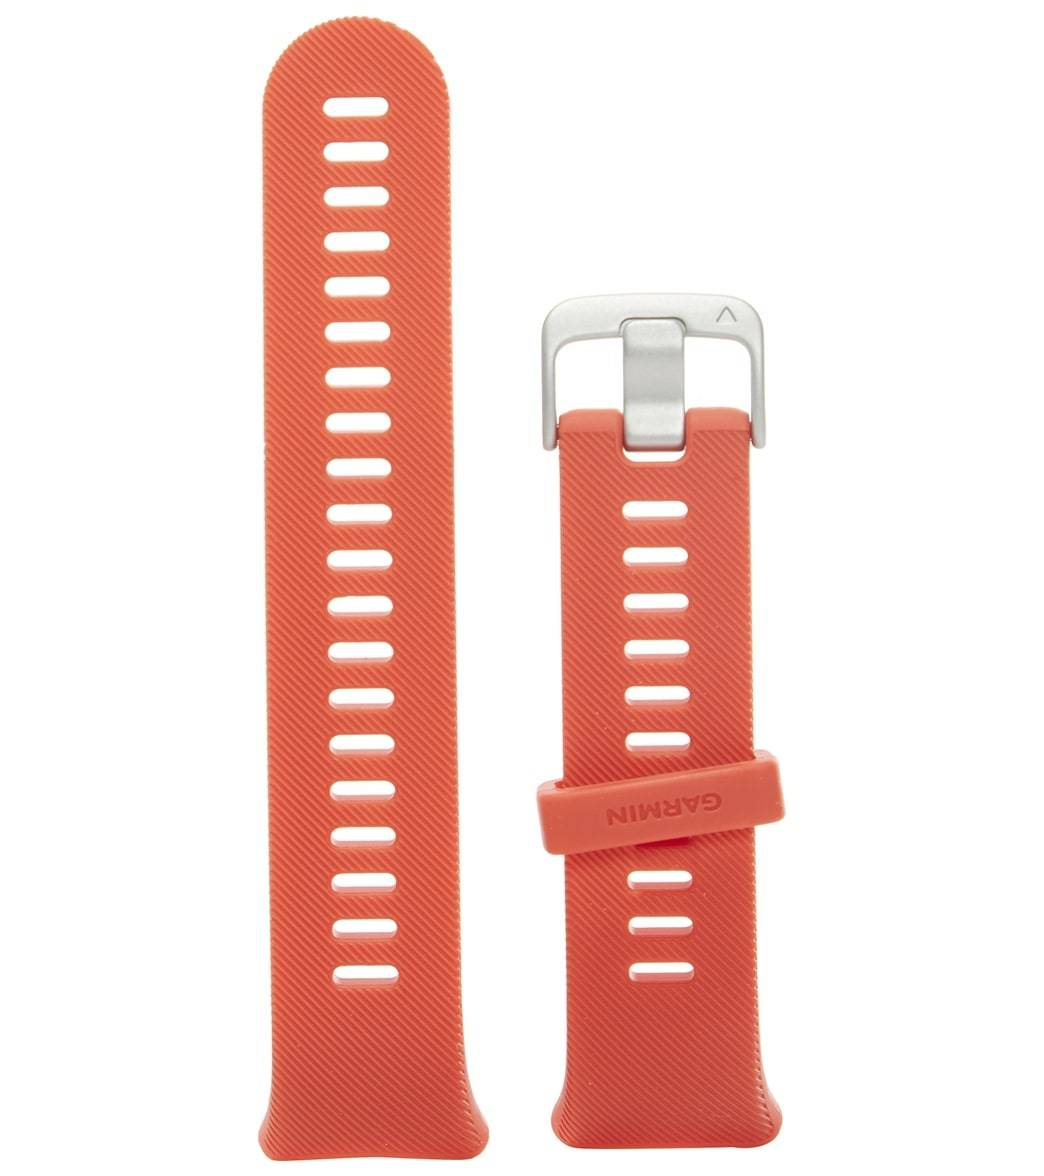 Garmin Forerunner 45 Accessory Band Only - Lava Red - Swimoutlet.com